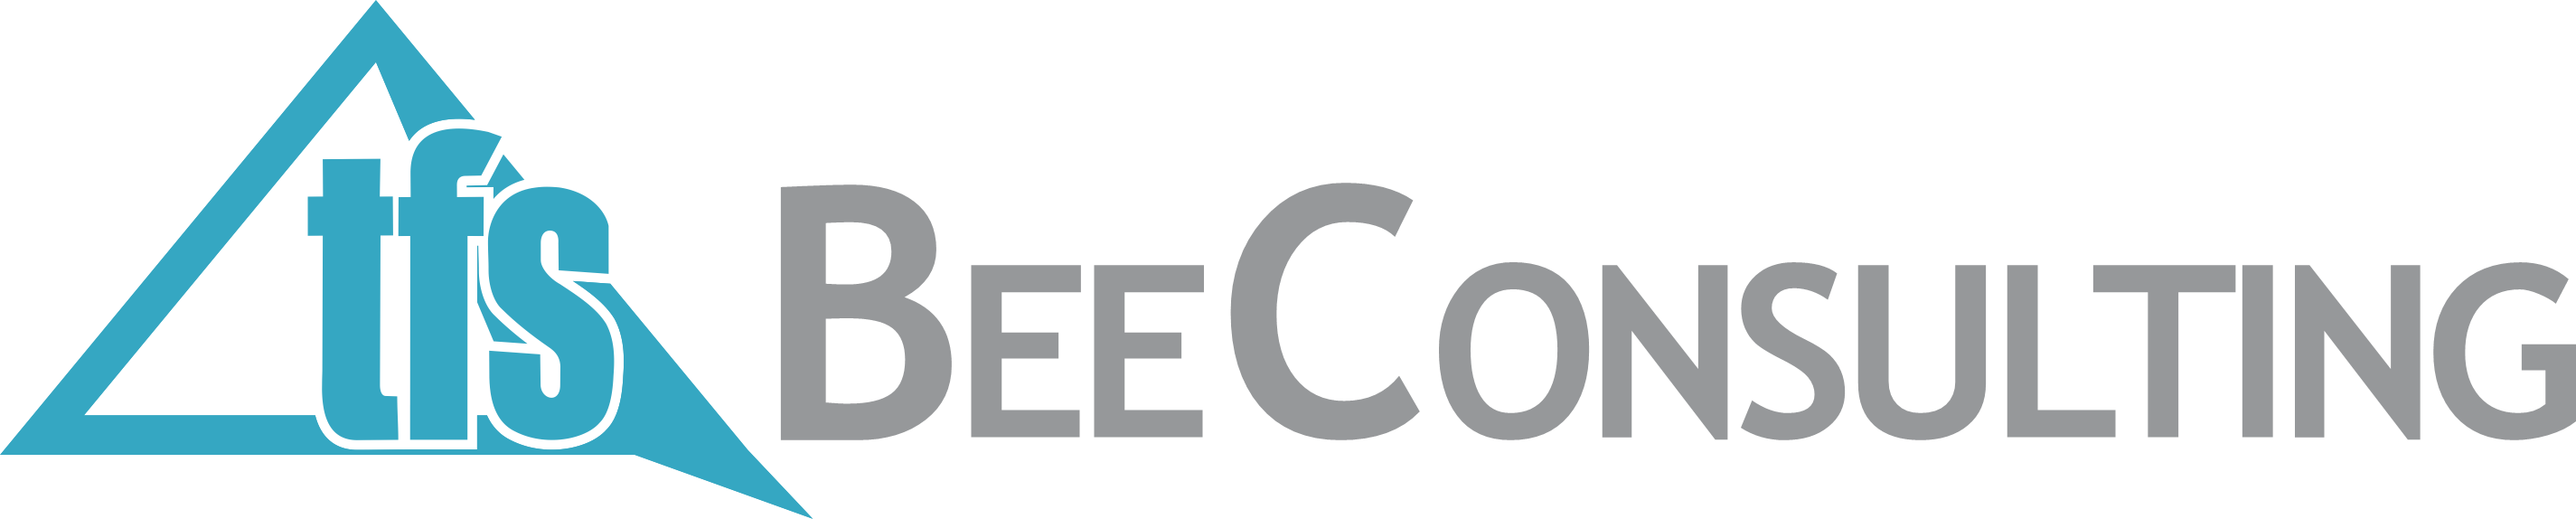 TFS BeeConsulting